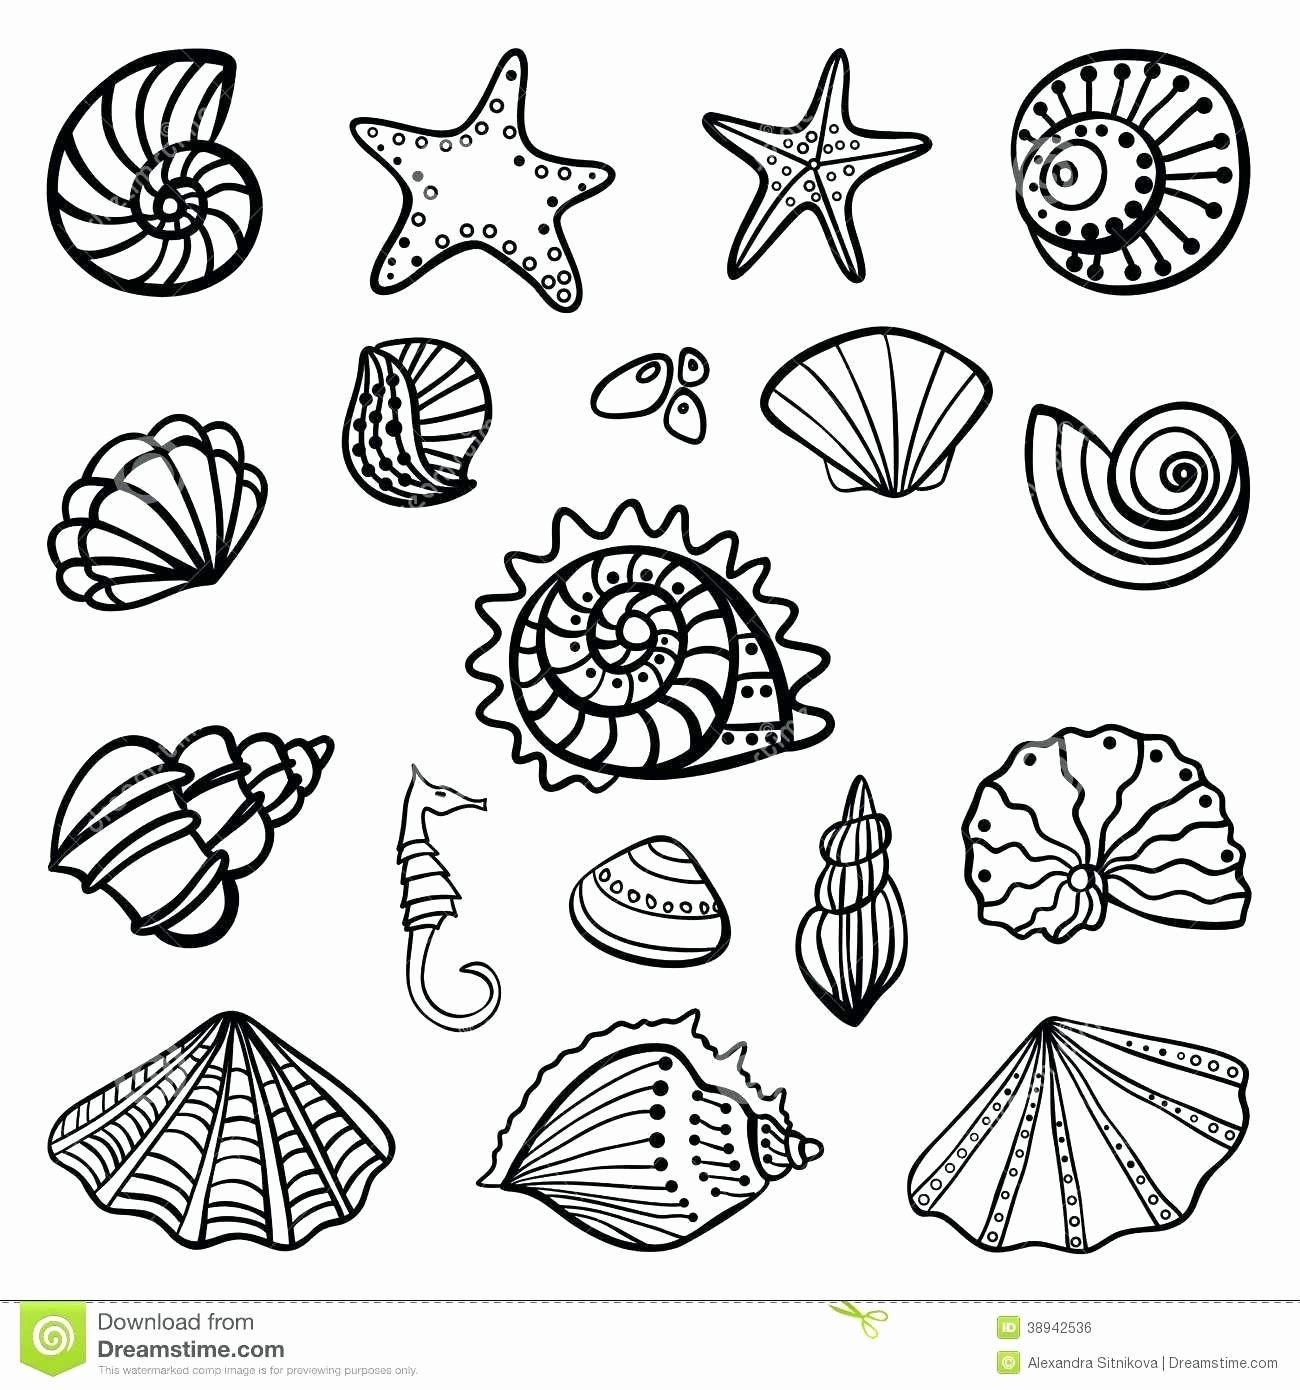 Sea Shell Coloring Book New Seashells Drawing At Getdrawings Coloring Pages Coloring Books Free Coloring Pages